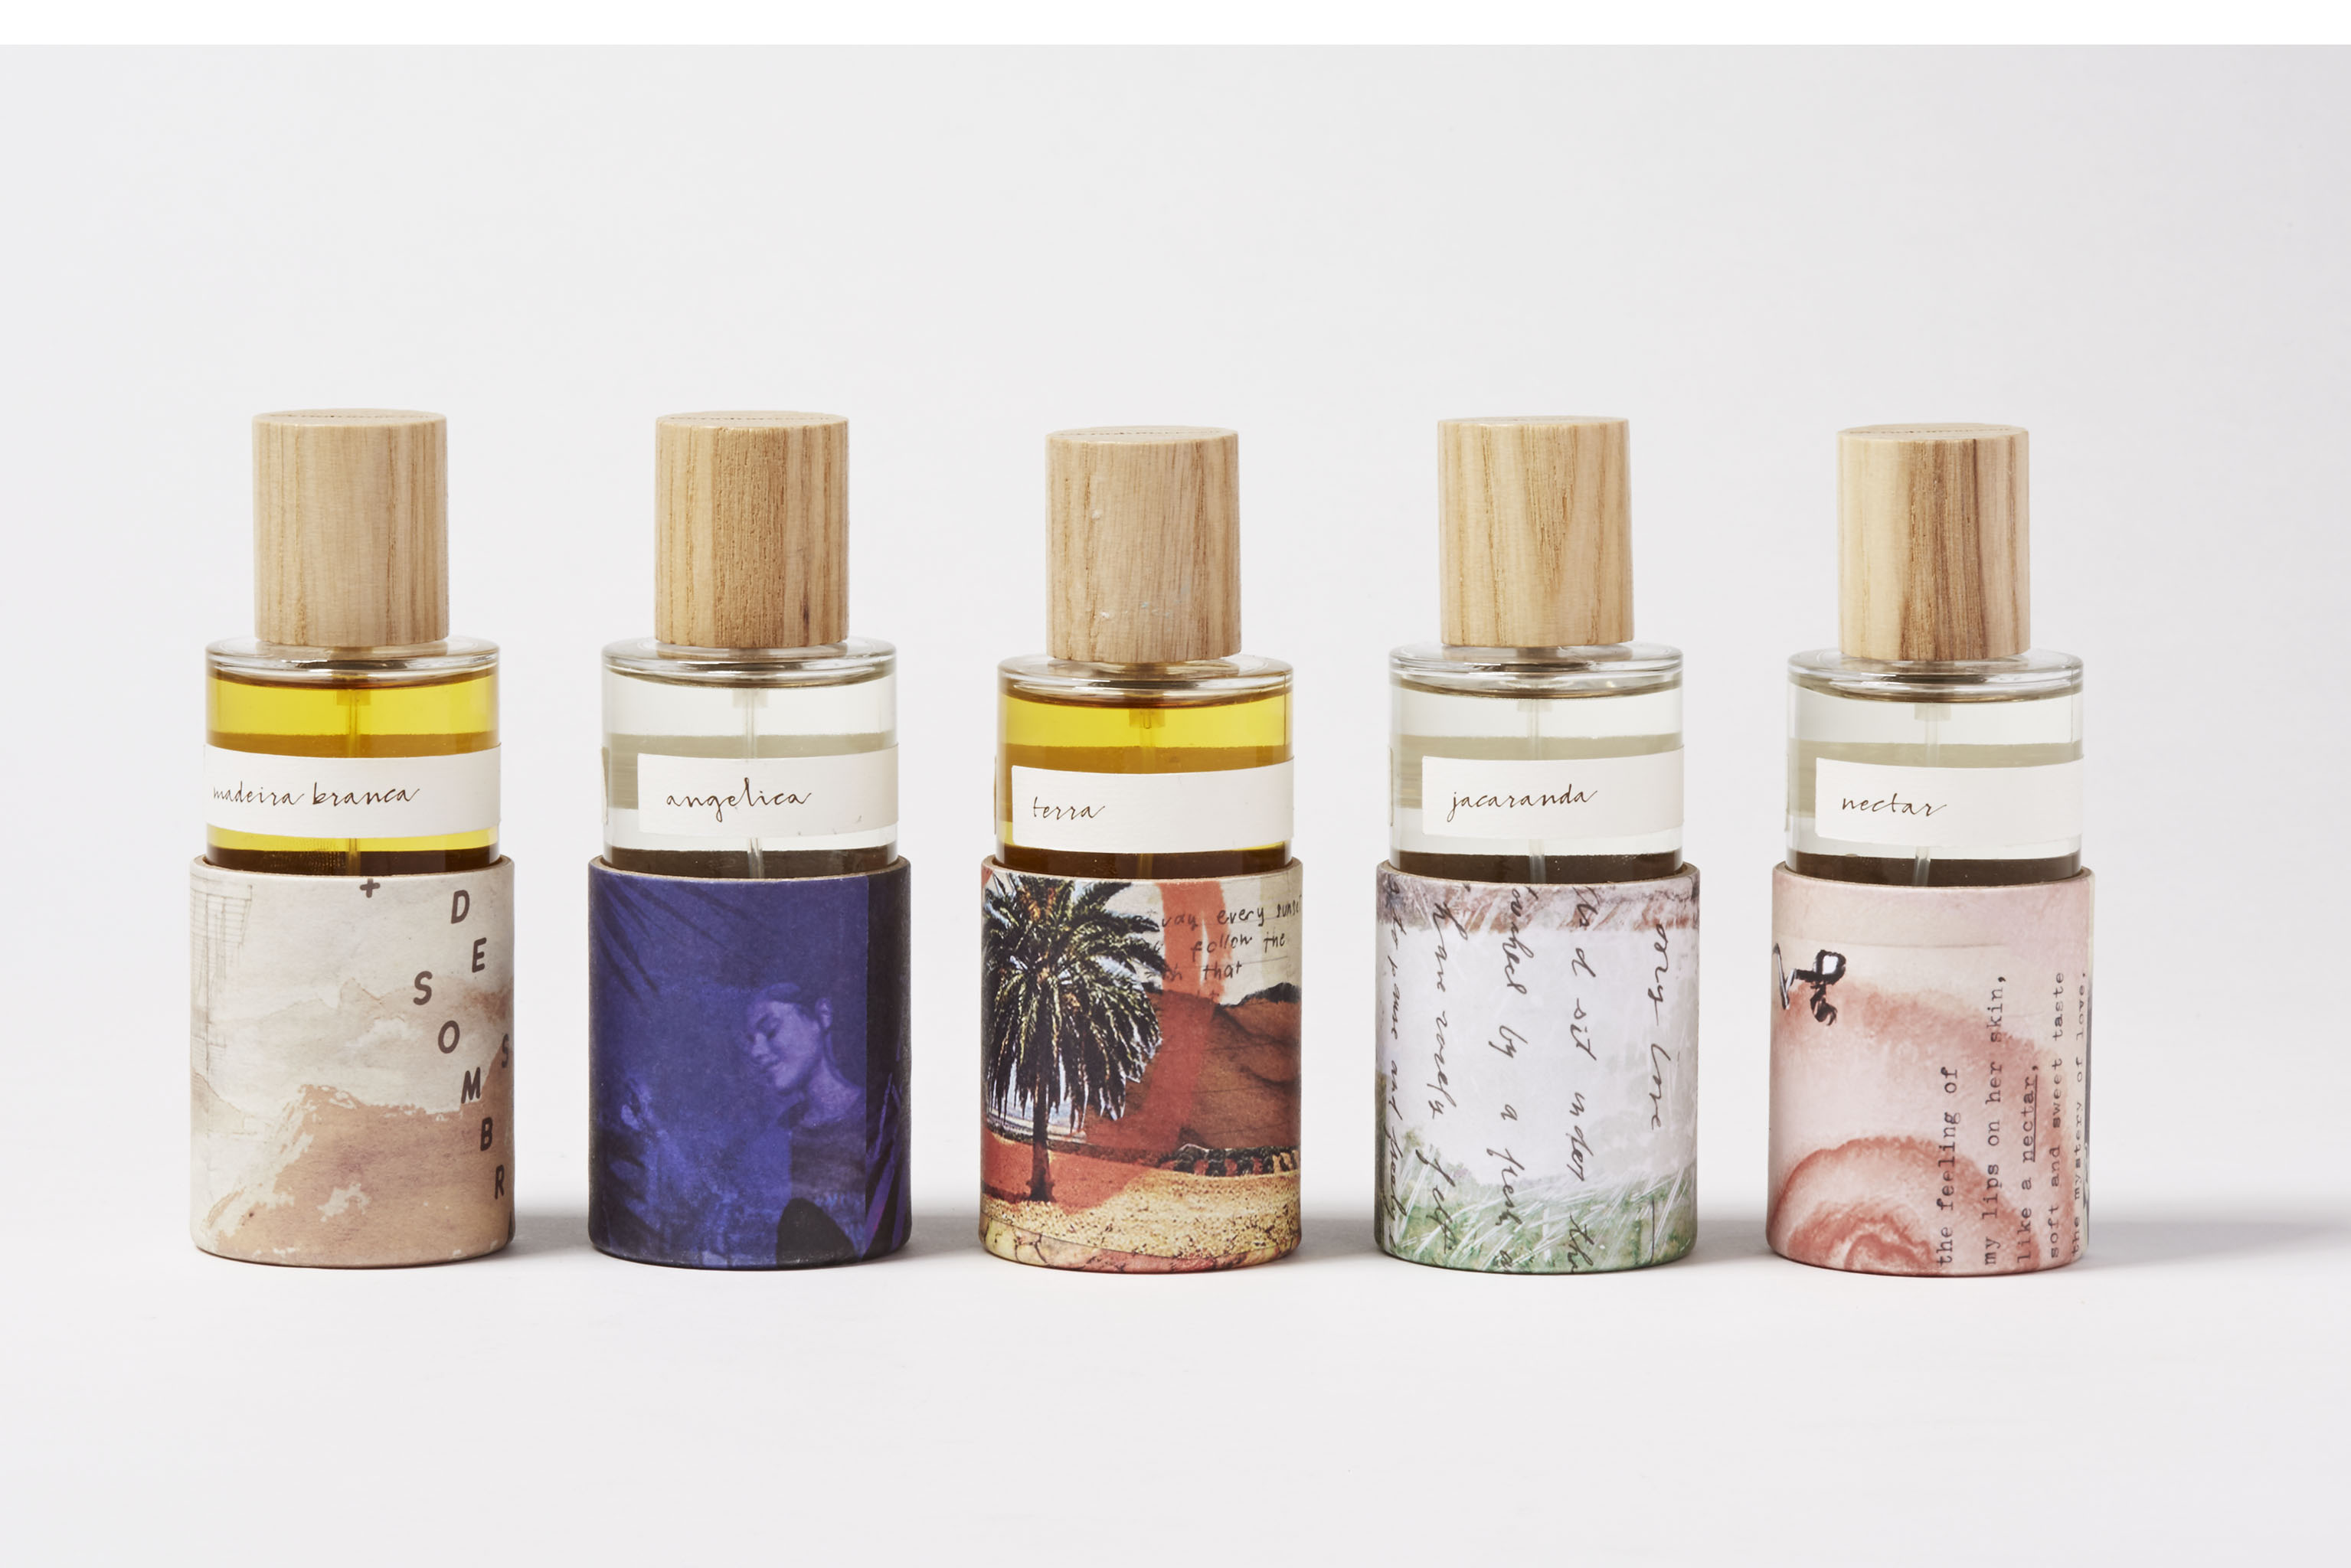 The Natura fragrance collections developed with the US